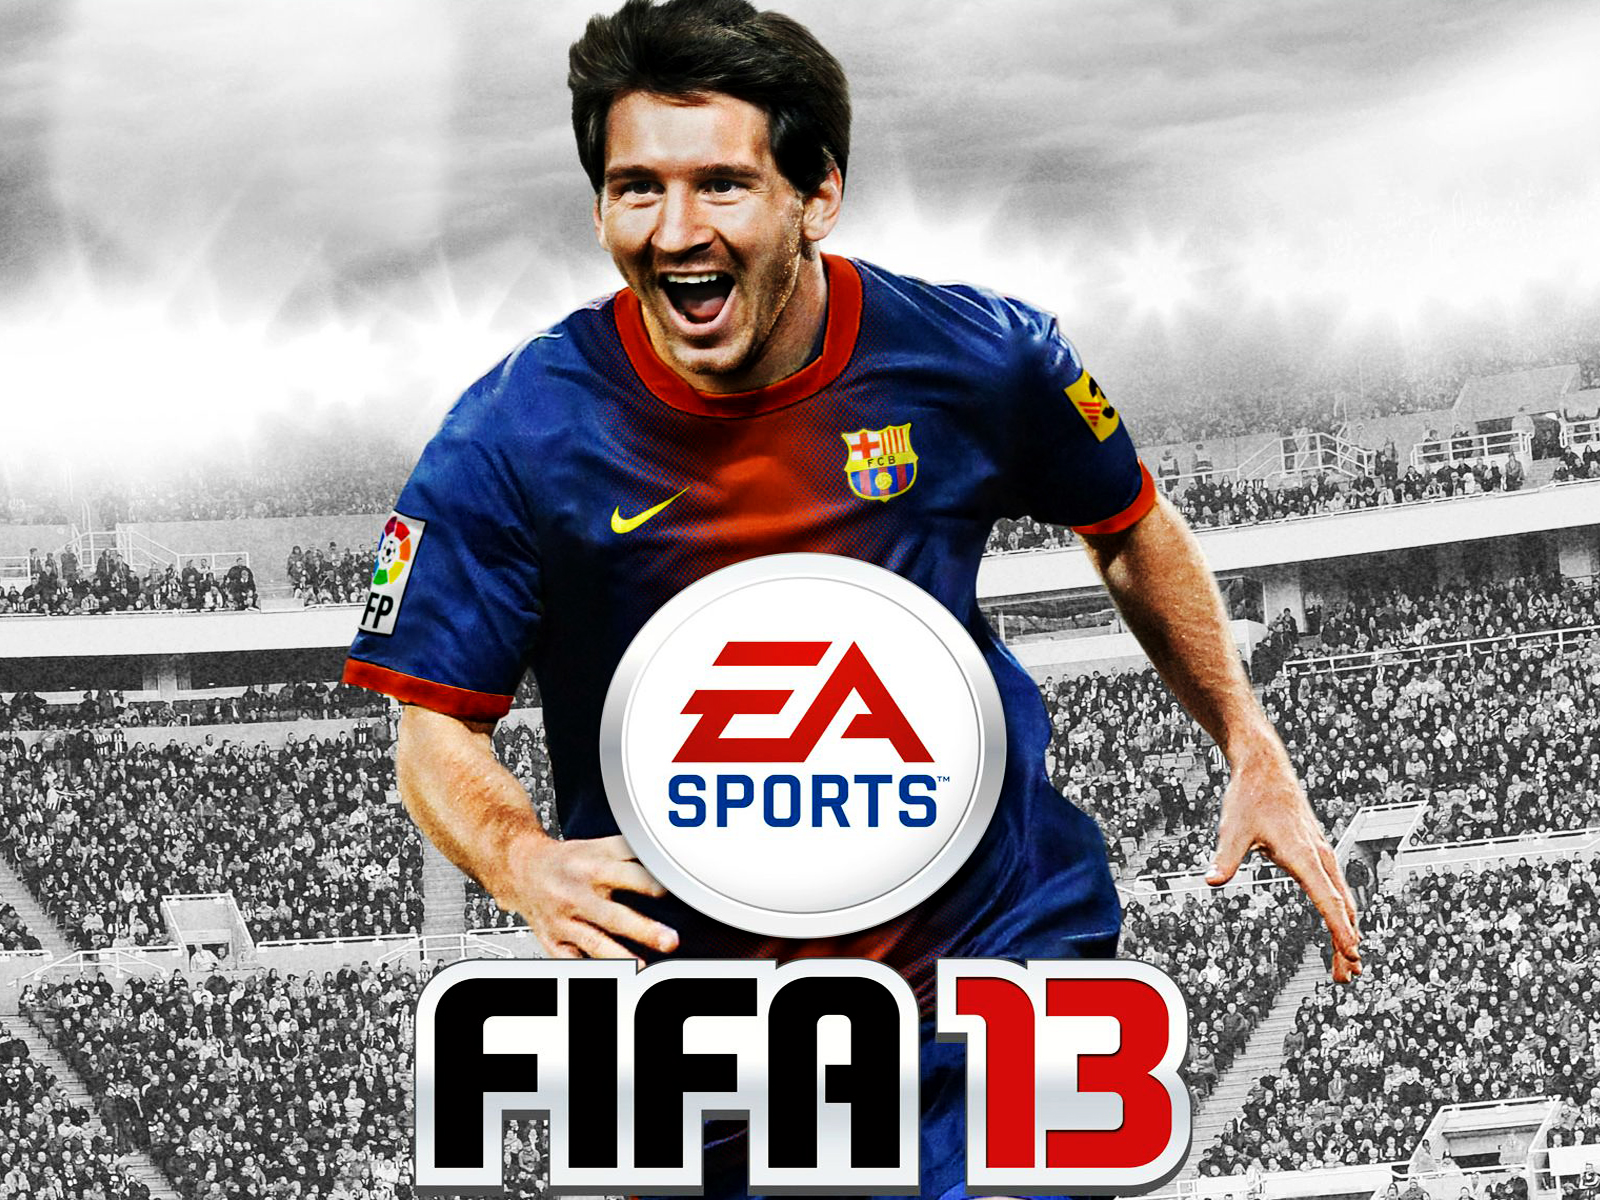 http://1.bp.blogspot.com/-JEiAaLSEgfs/UFxbWGe55BI/AAAAAAAAEsY/10rUCbnZrsA/s1600/Fifa-13-New-Game-Messi-HD-Wallpaper-GameWallBase.Com.jpg